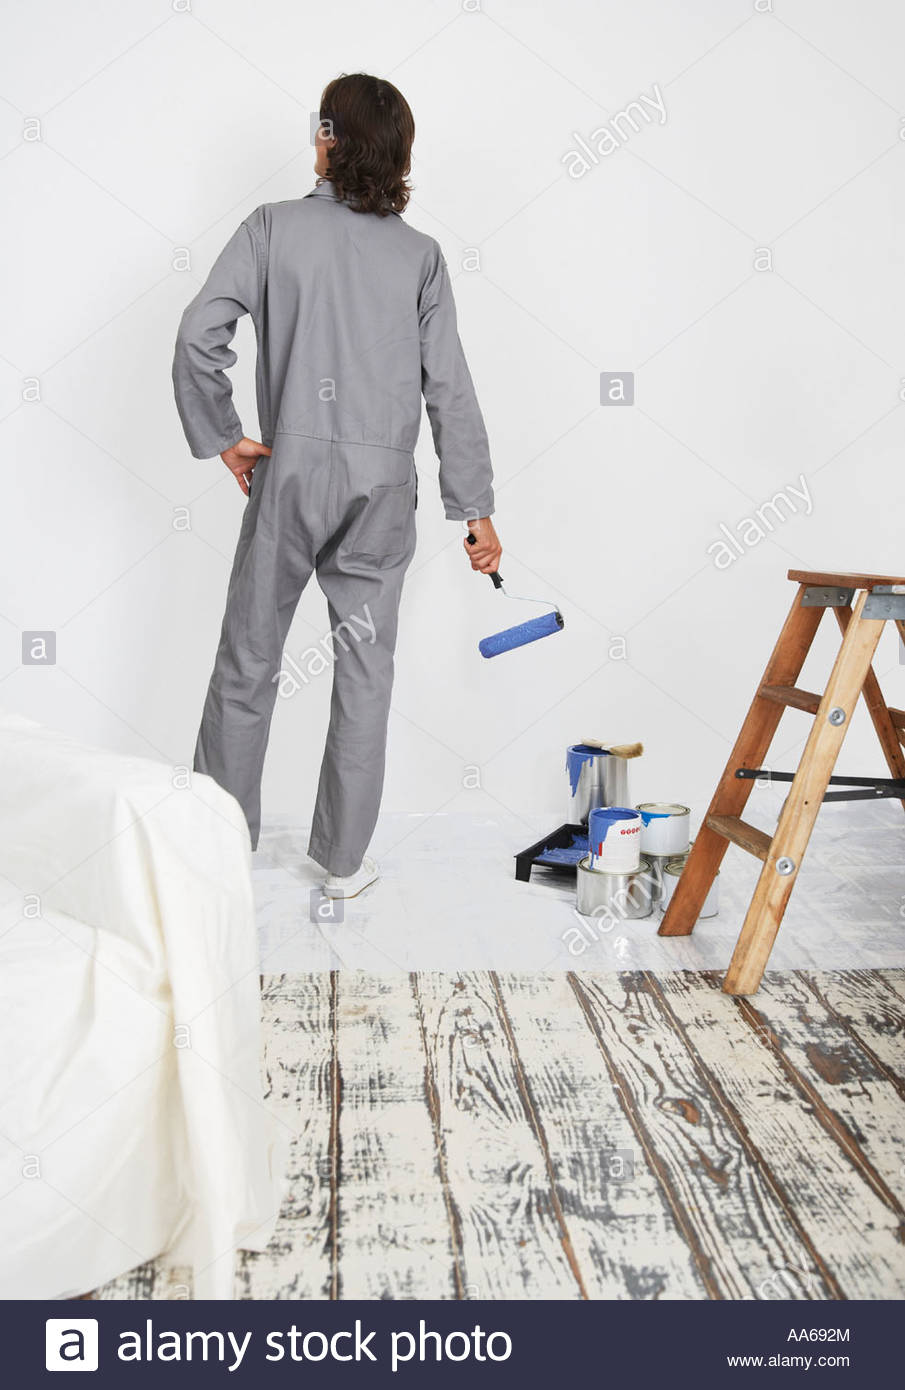 Man with paint roller looking at white wall - Stock Image